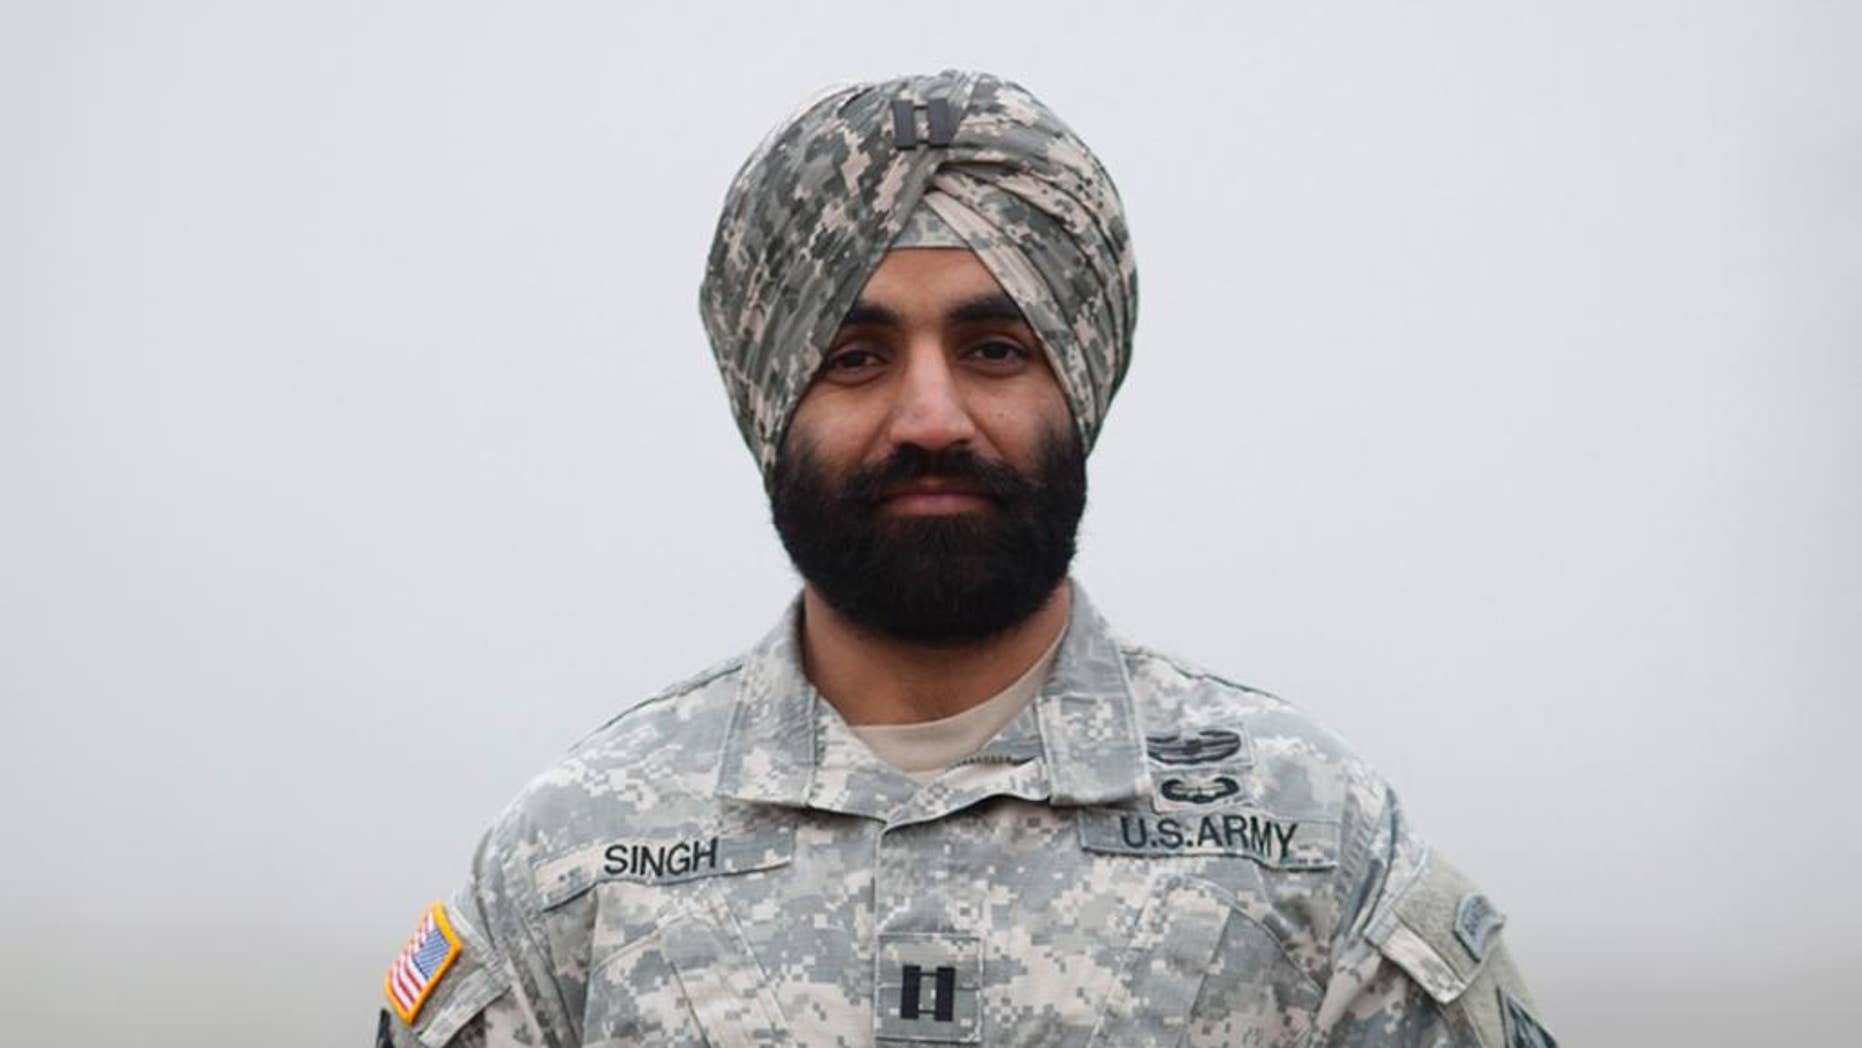 Army grants Sikh enlistees waiver to its beard policy | Fox News